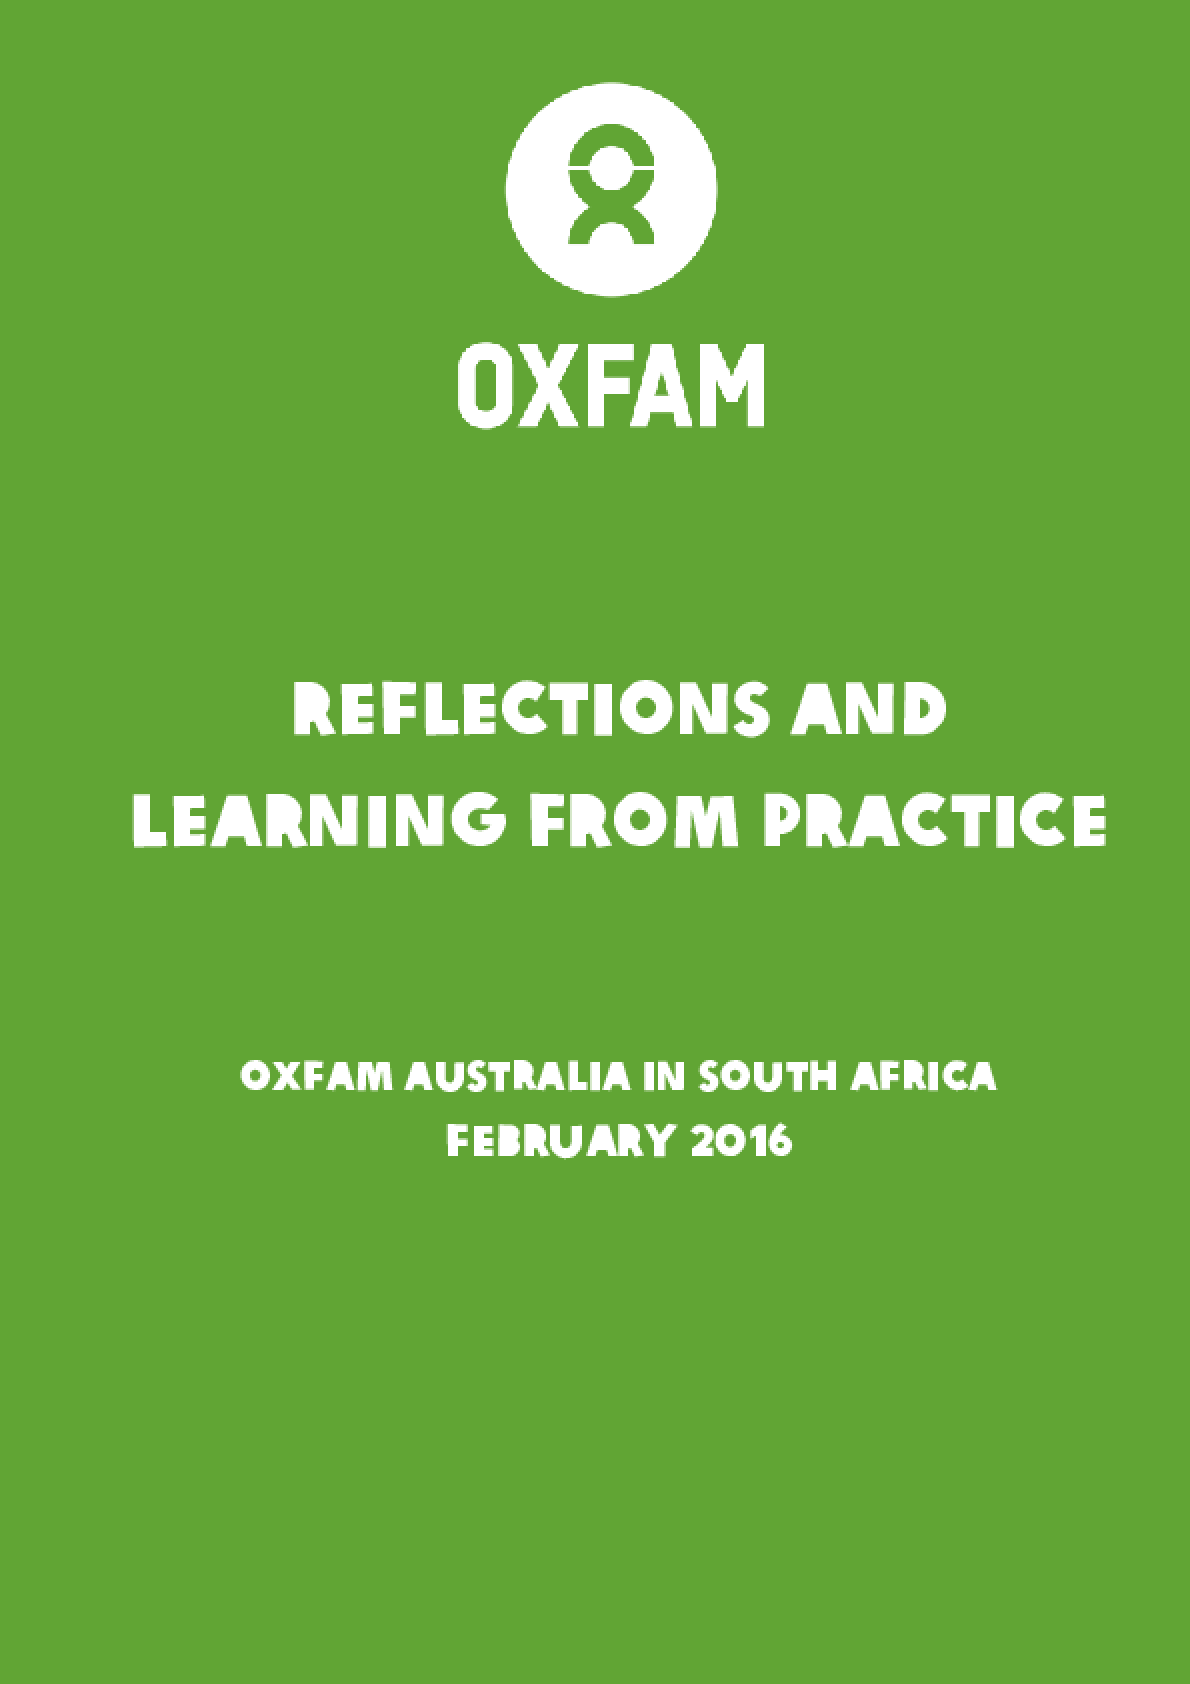 Reflections and Learning from Practice: Oxfam Australia in South Africa